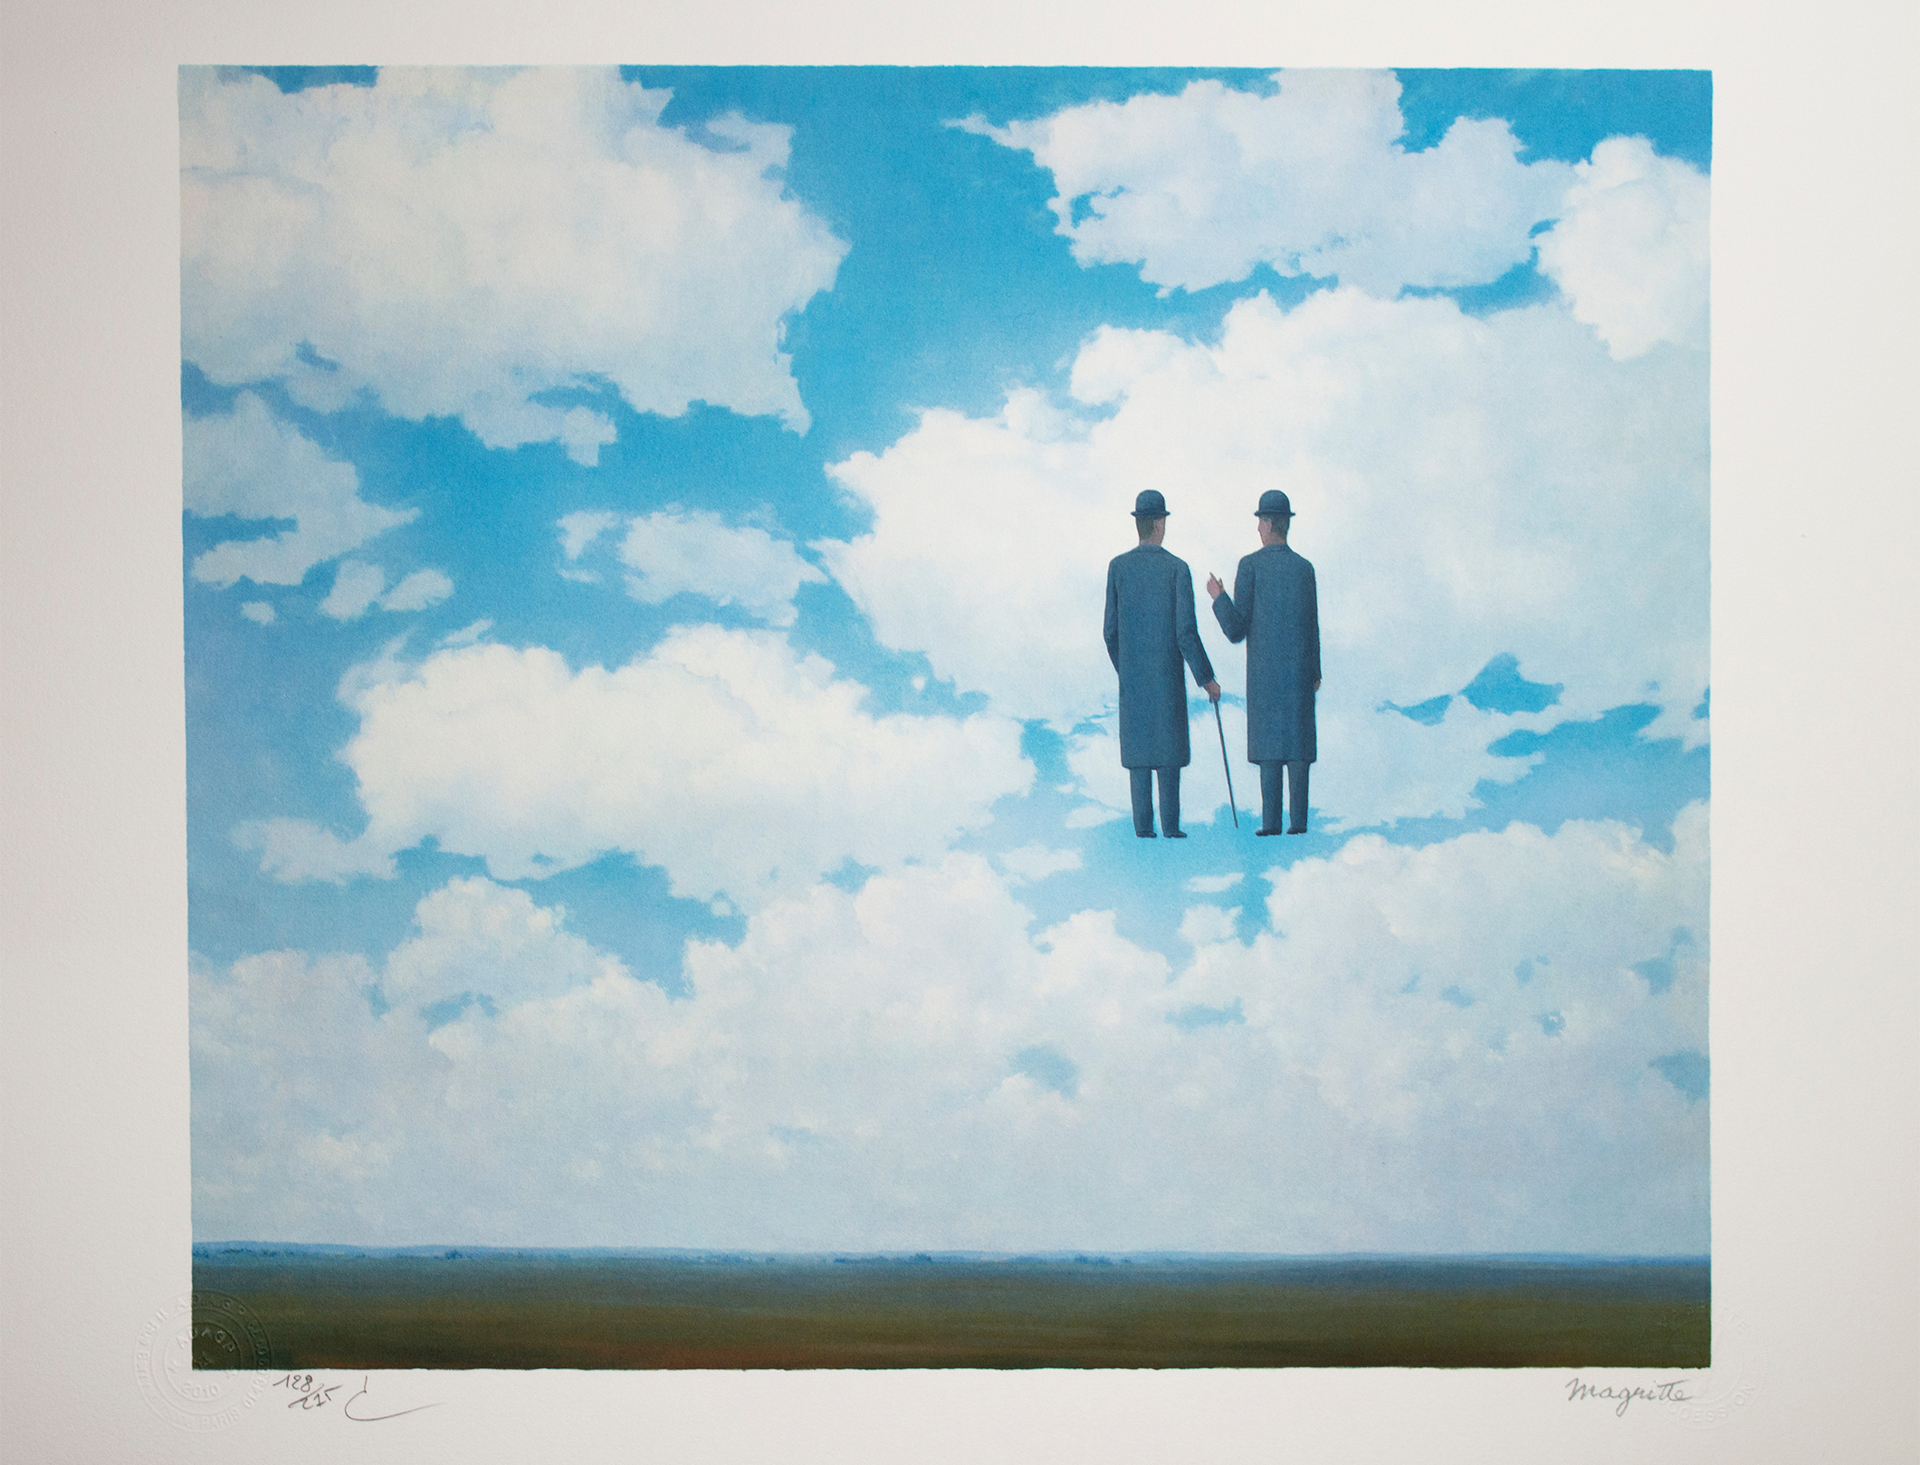 La Reconnaissance infinie (The Infinite Recognition) by Rene Magritte